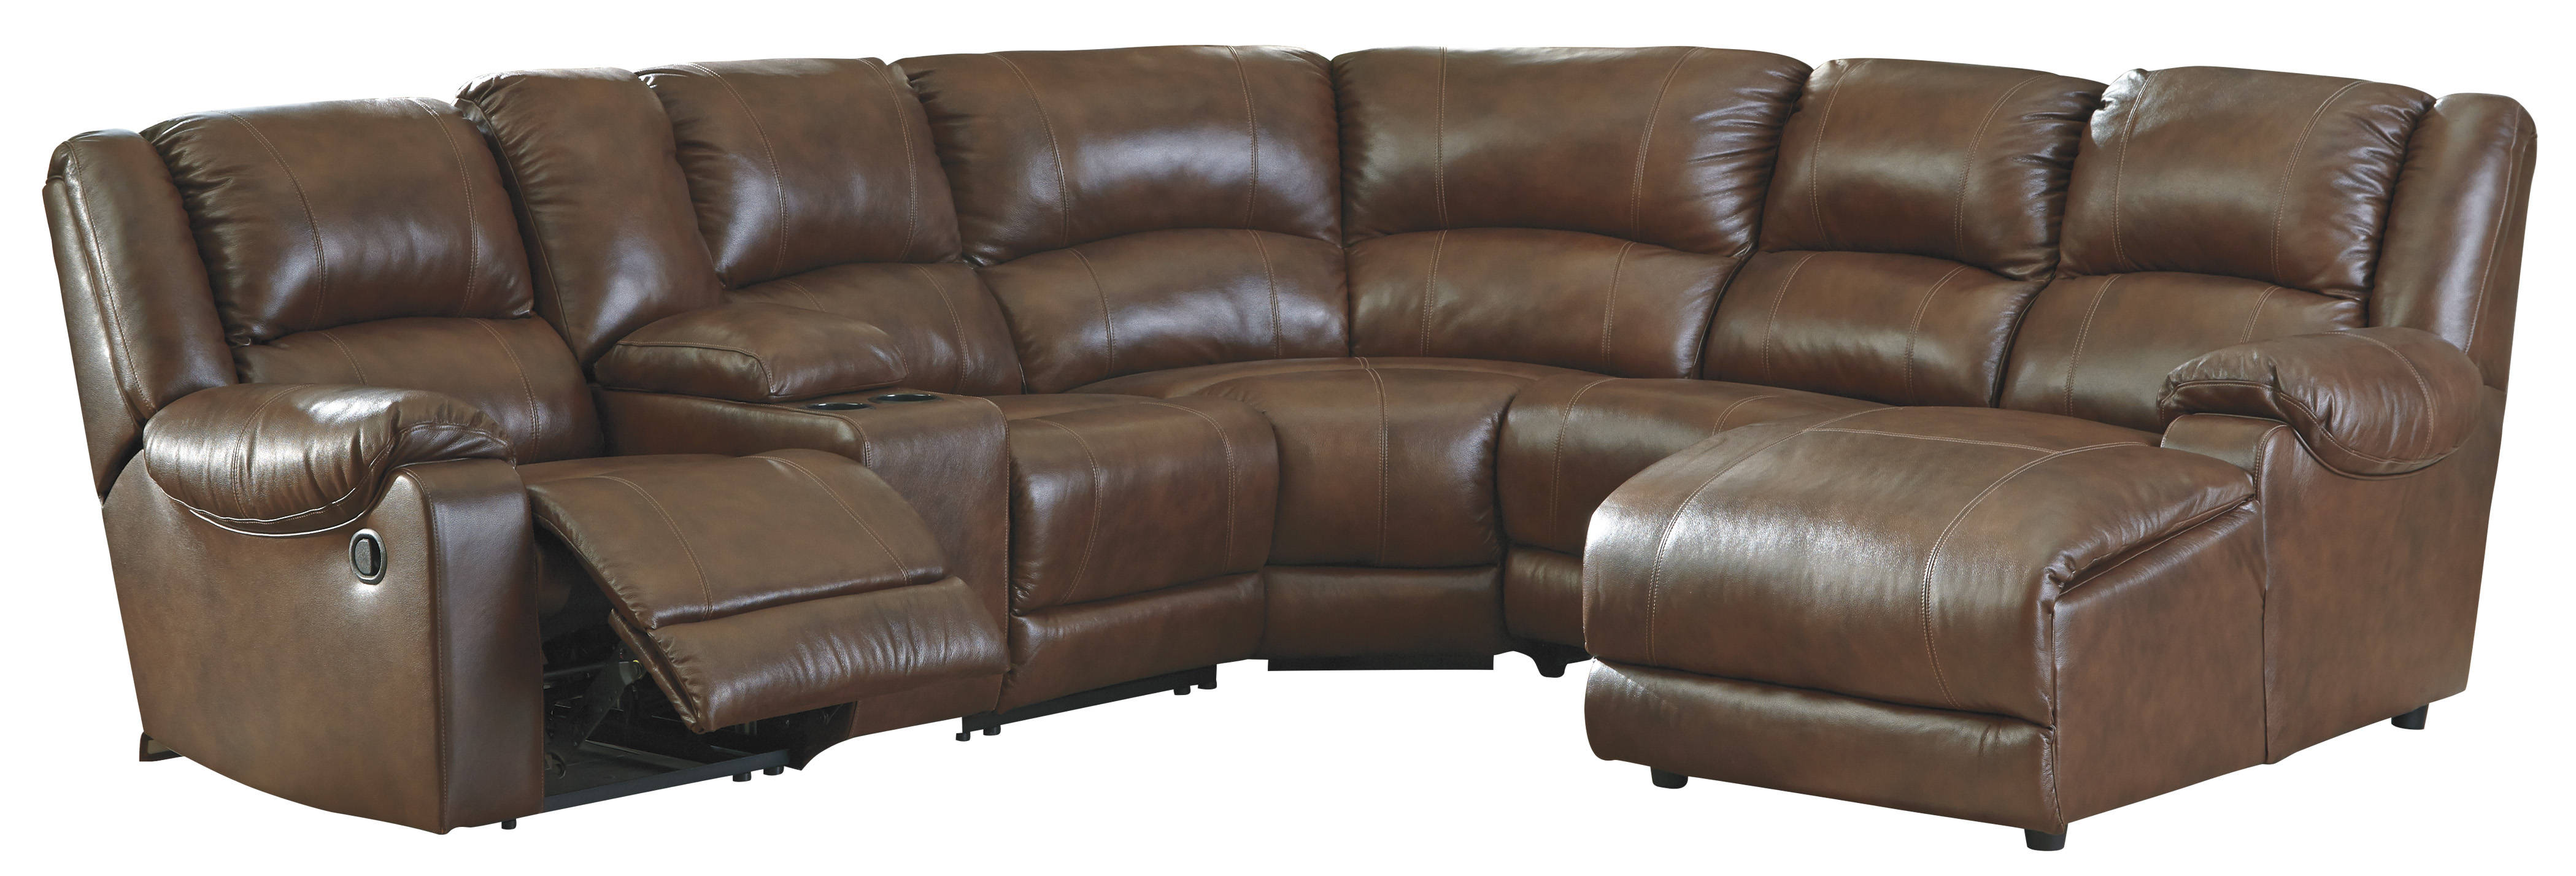 Ashley Furniture Billwedge Canyon Raf Chaise And Console Sectional The Classy Home